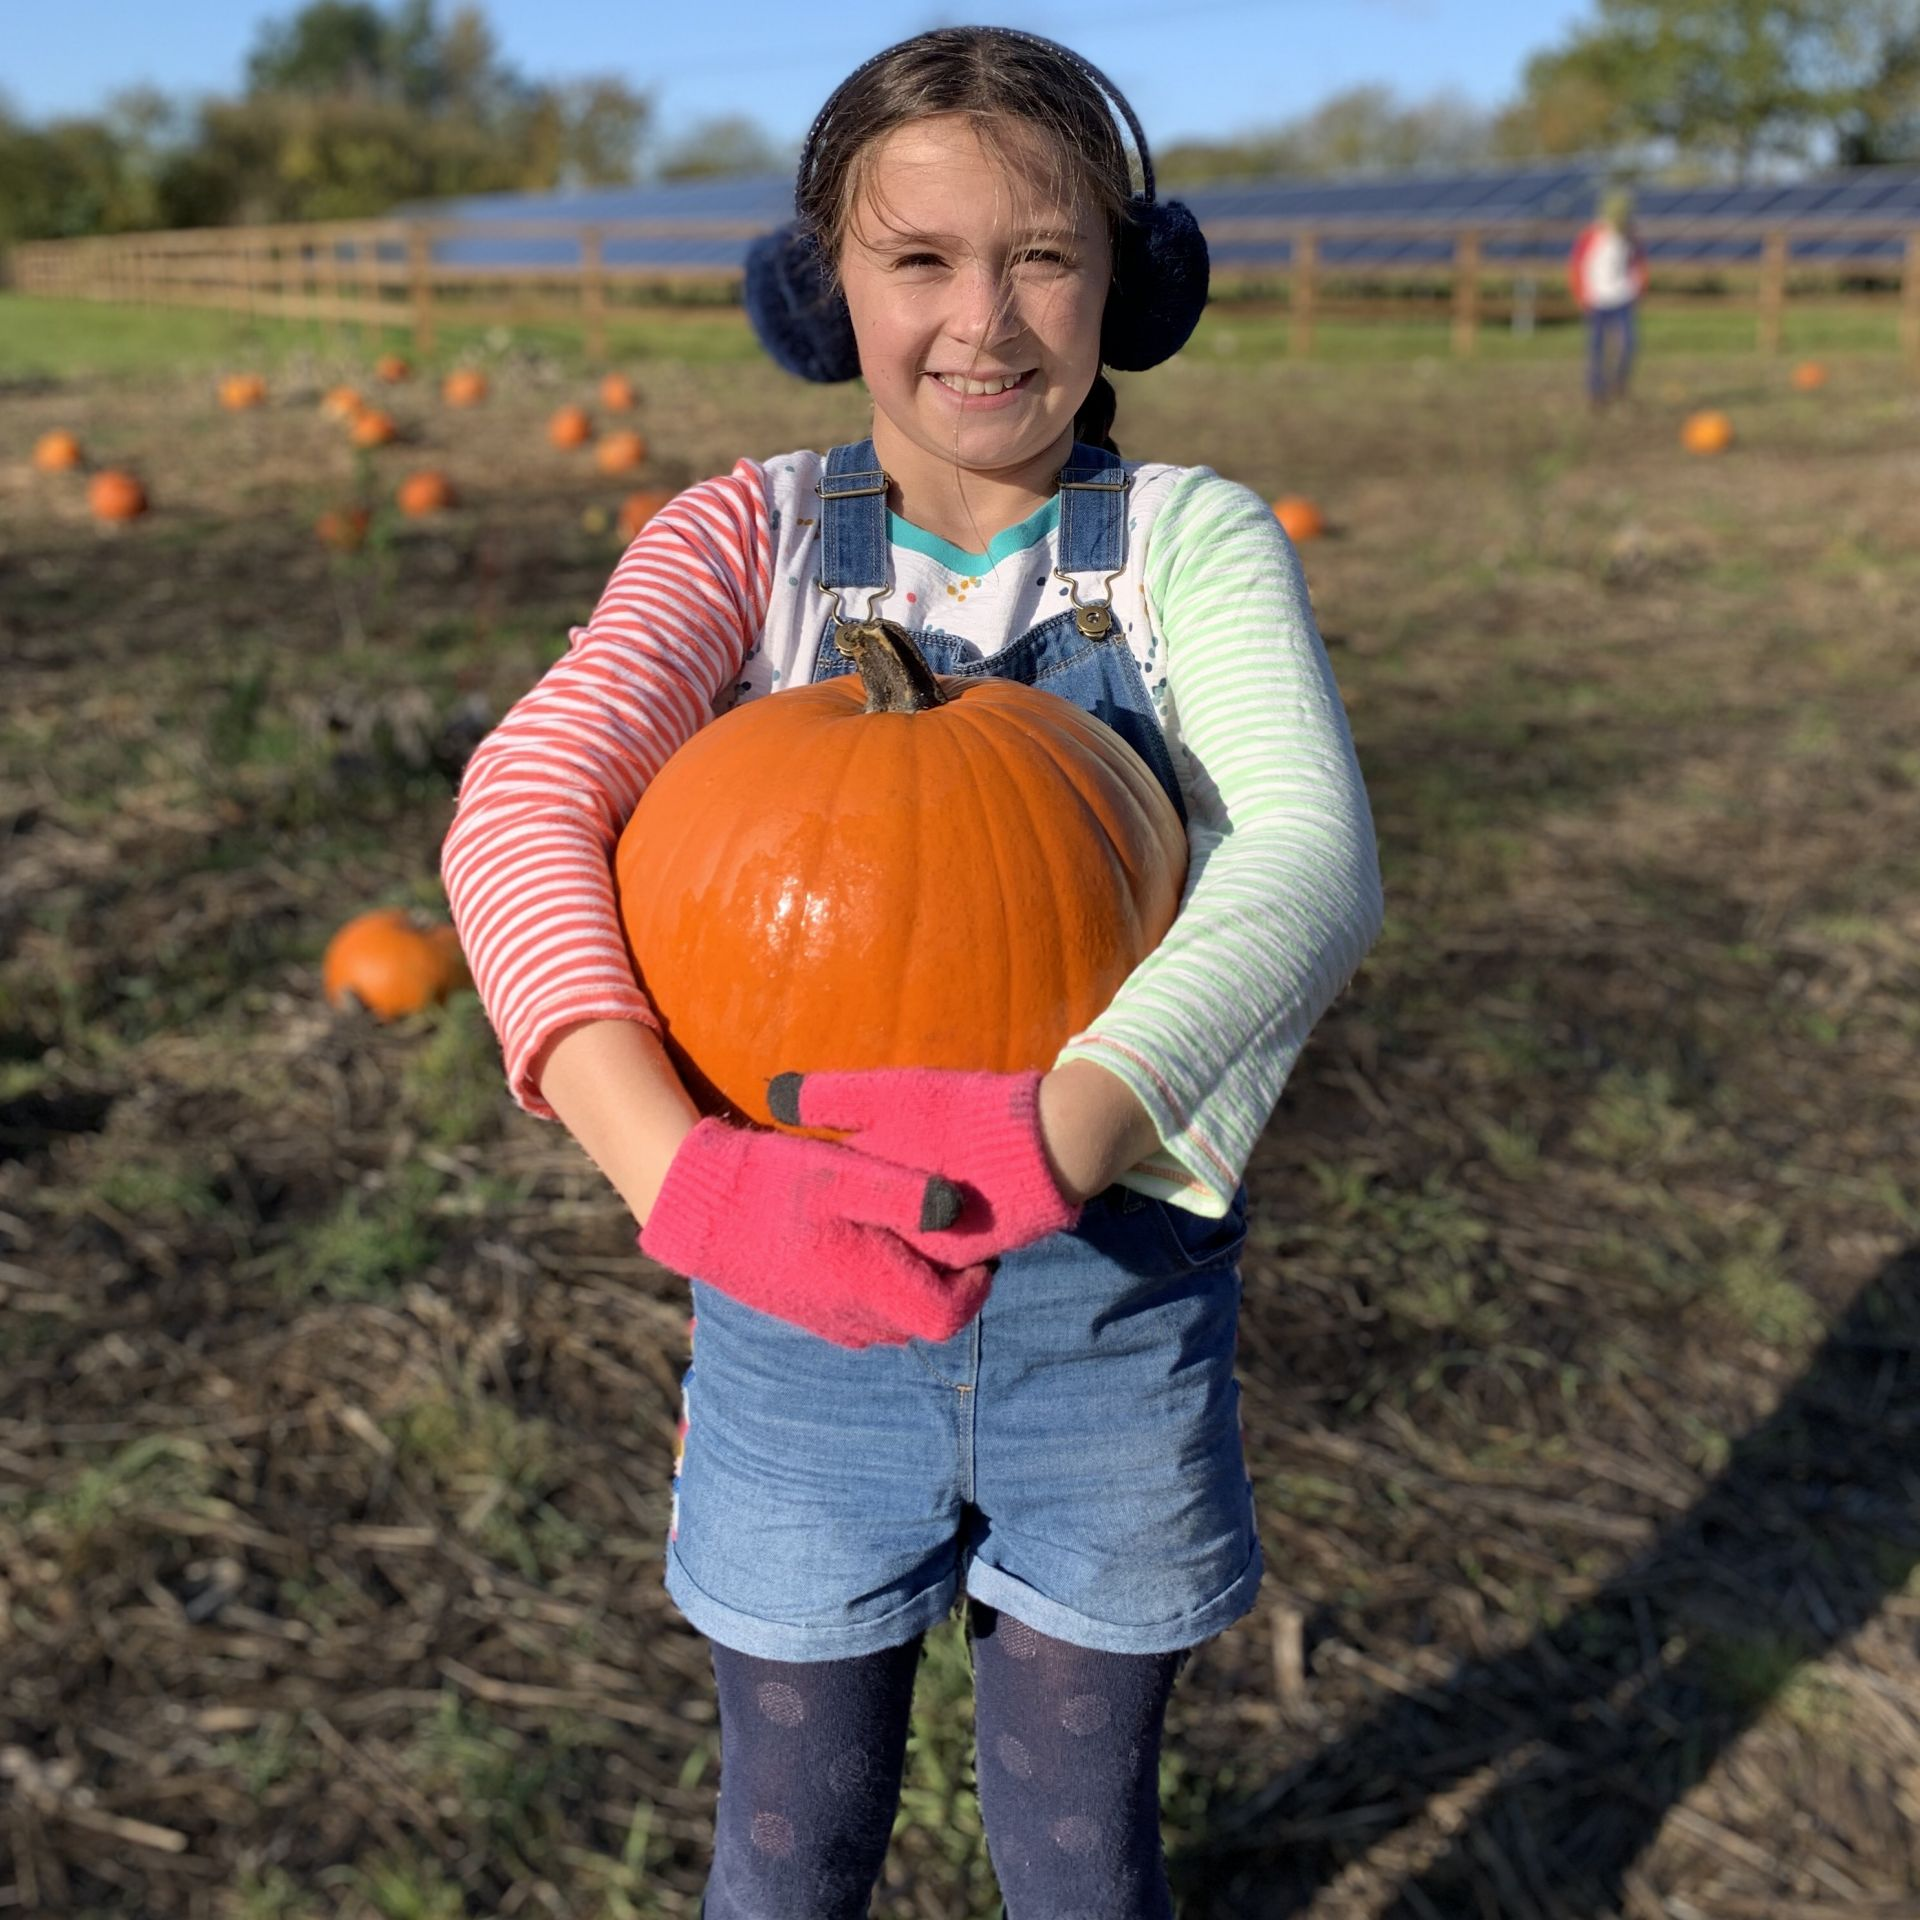 A girl holding a pumpkin smiling